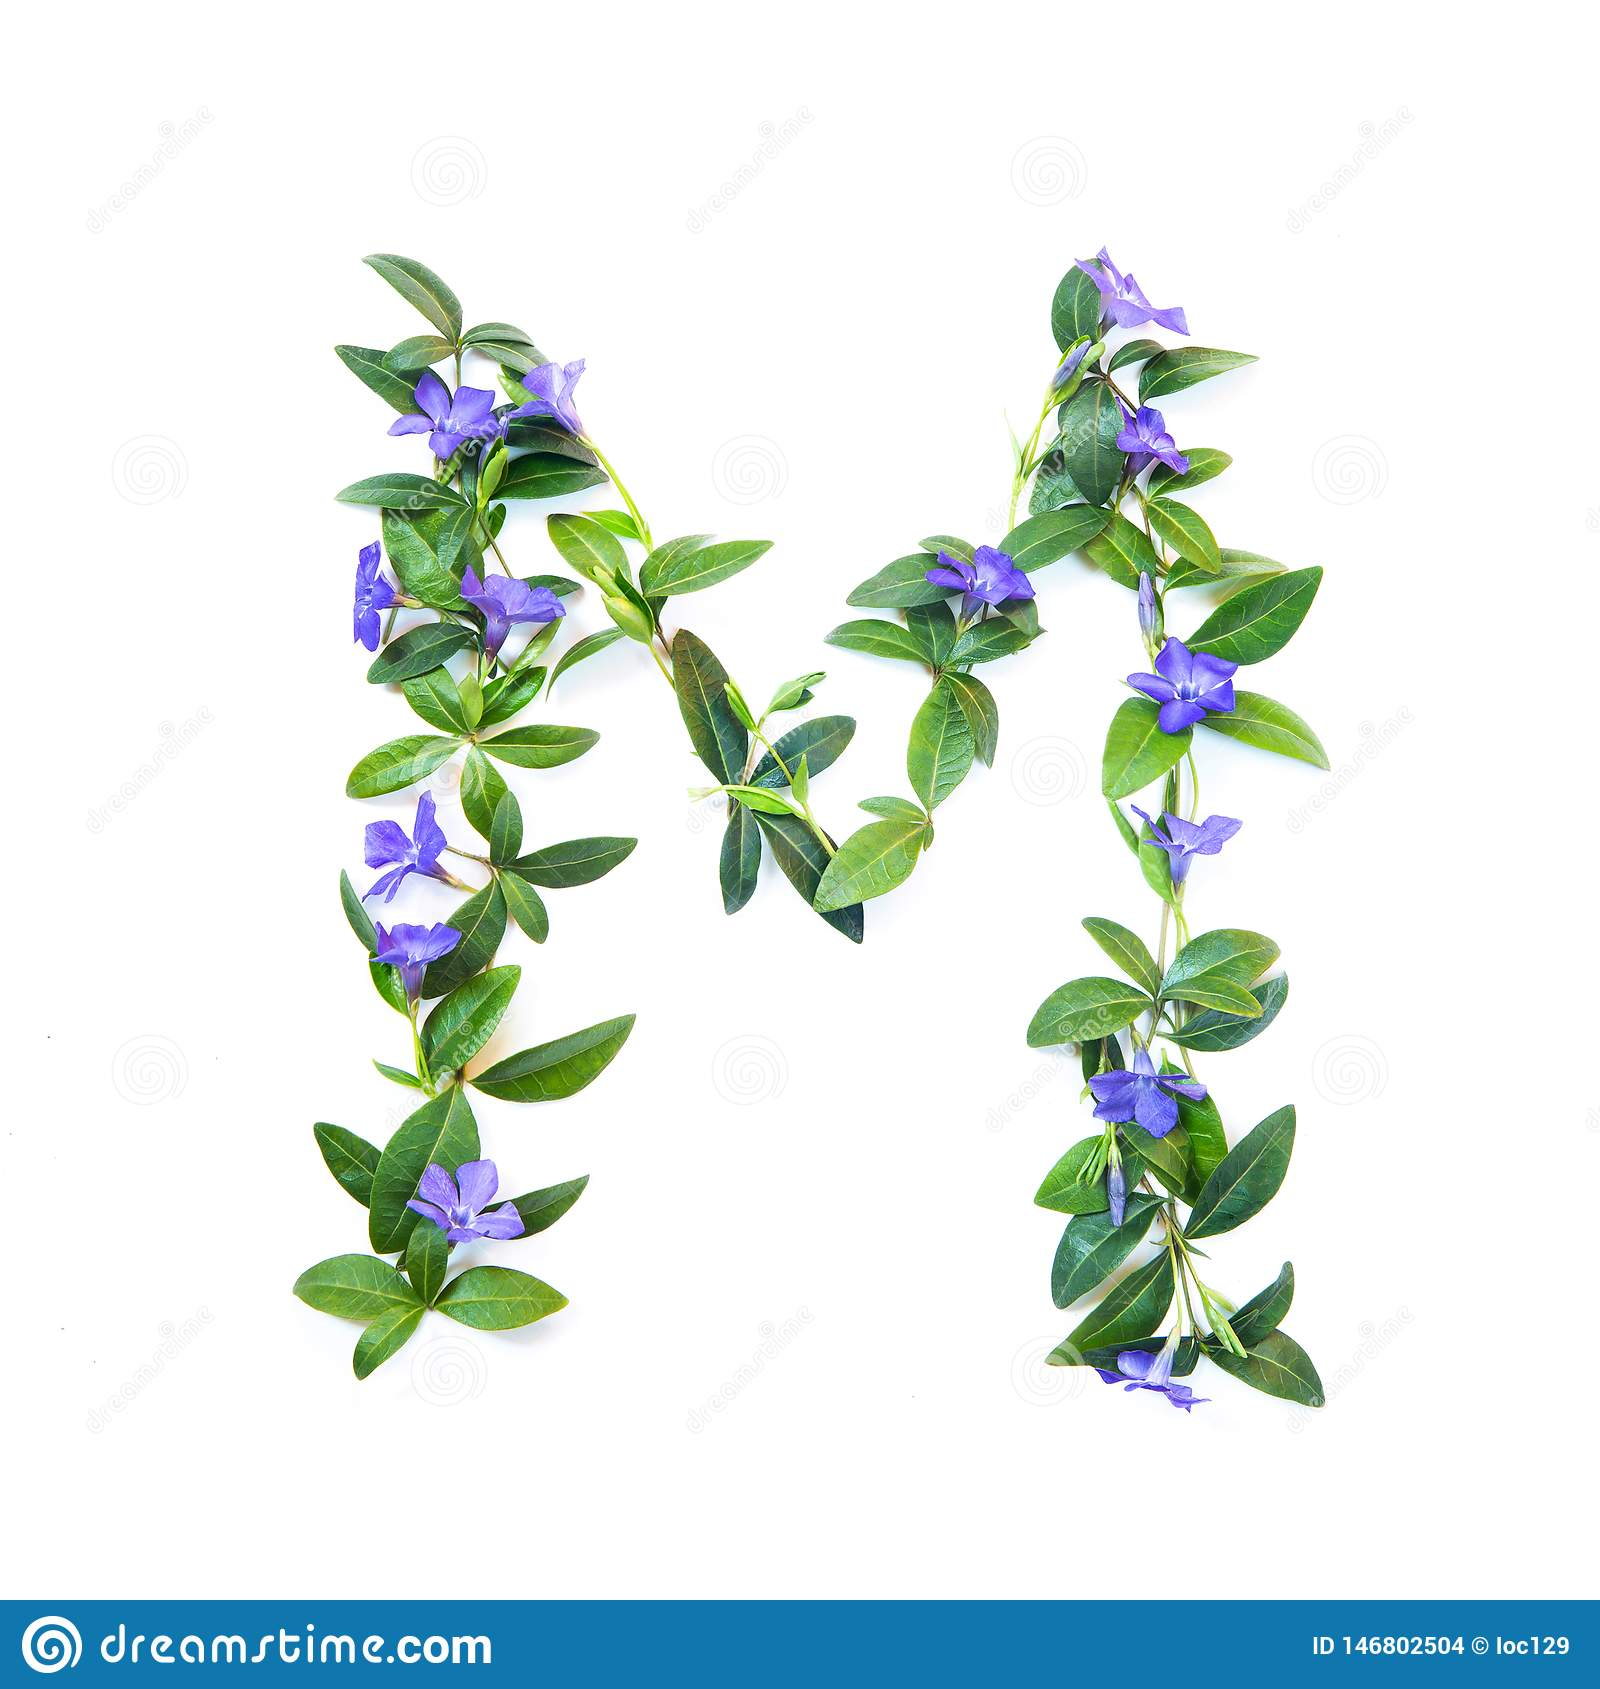 M, letter of the alphabet of flowers isolated on white background. The letter of flowers and leaves of periwinkle